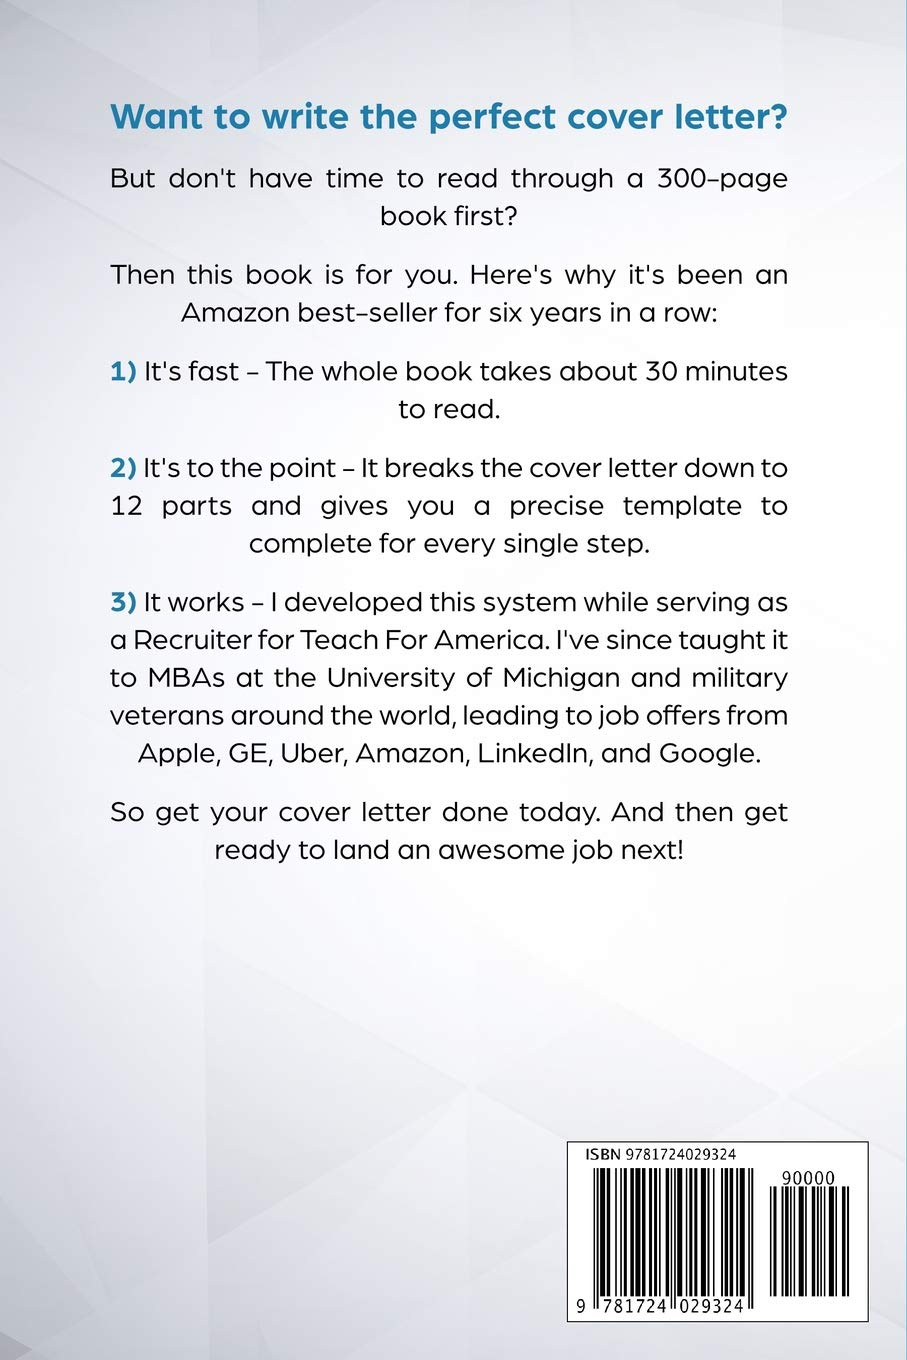 Get It Done: Write a Cover Letter: Amazon.de: Jeremy ...